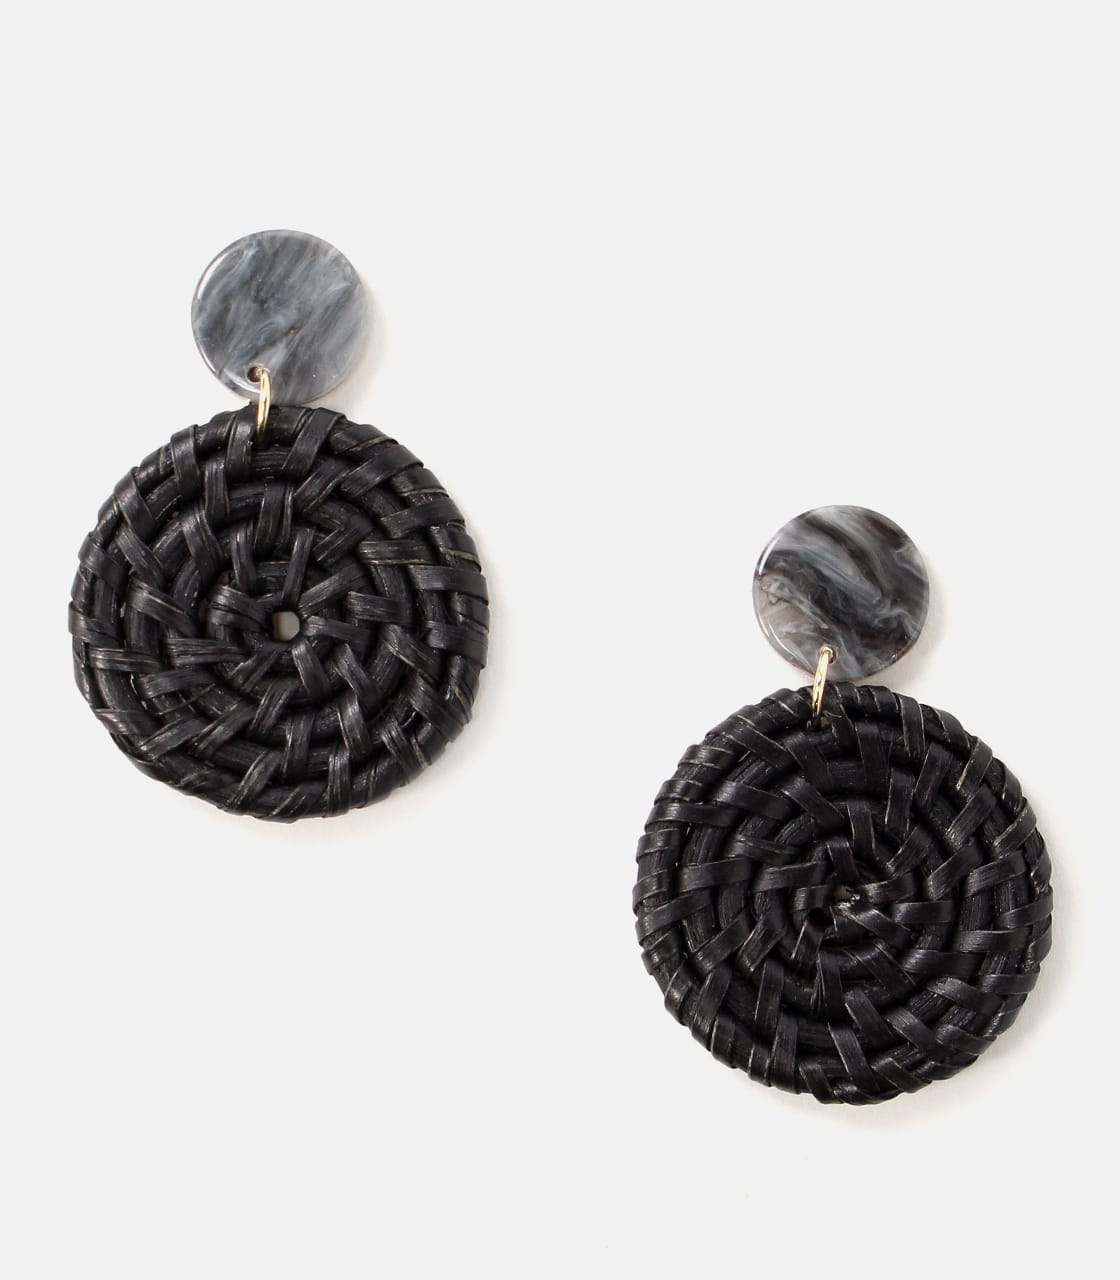 【AZUL BY MOUSSY】CIRCLE RATTAN EARRINGS 詳細画像 BLK 1